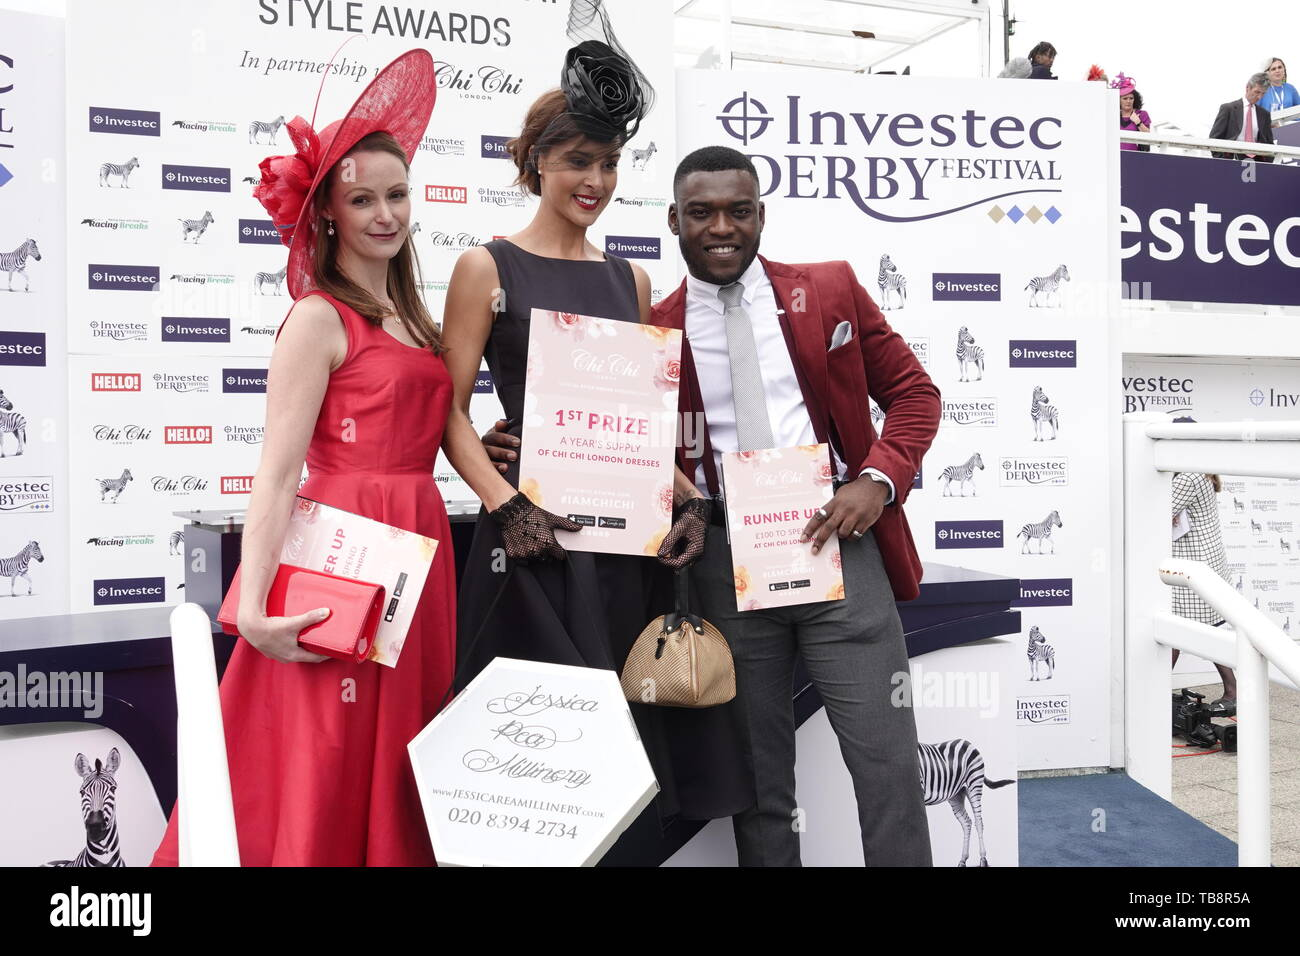 Epsom Downs, Surrey, UK. 31st May, 2019. Charlotte Hamilton from Cheltenham wins The 'Style Awards' with the runners up at the Investec Derby Festival - on Ladies Day, classic horse race. Credit: Motofoto/Alamy Live News - Stock Image